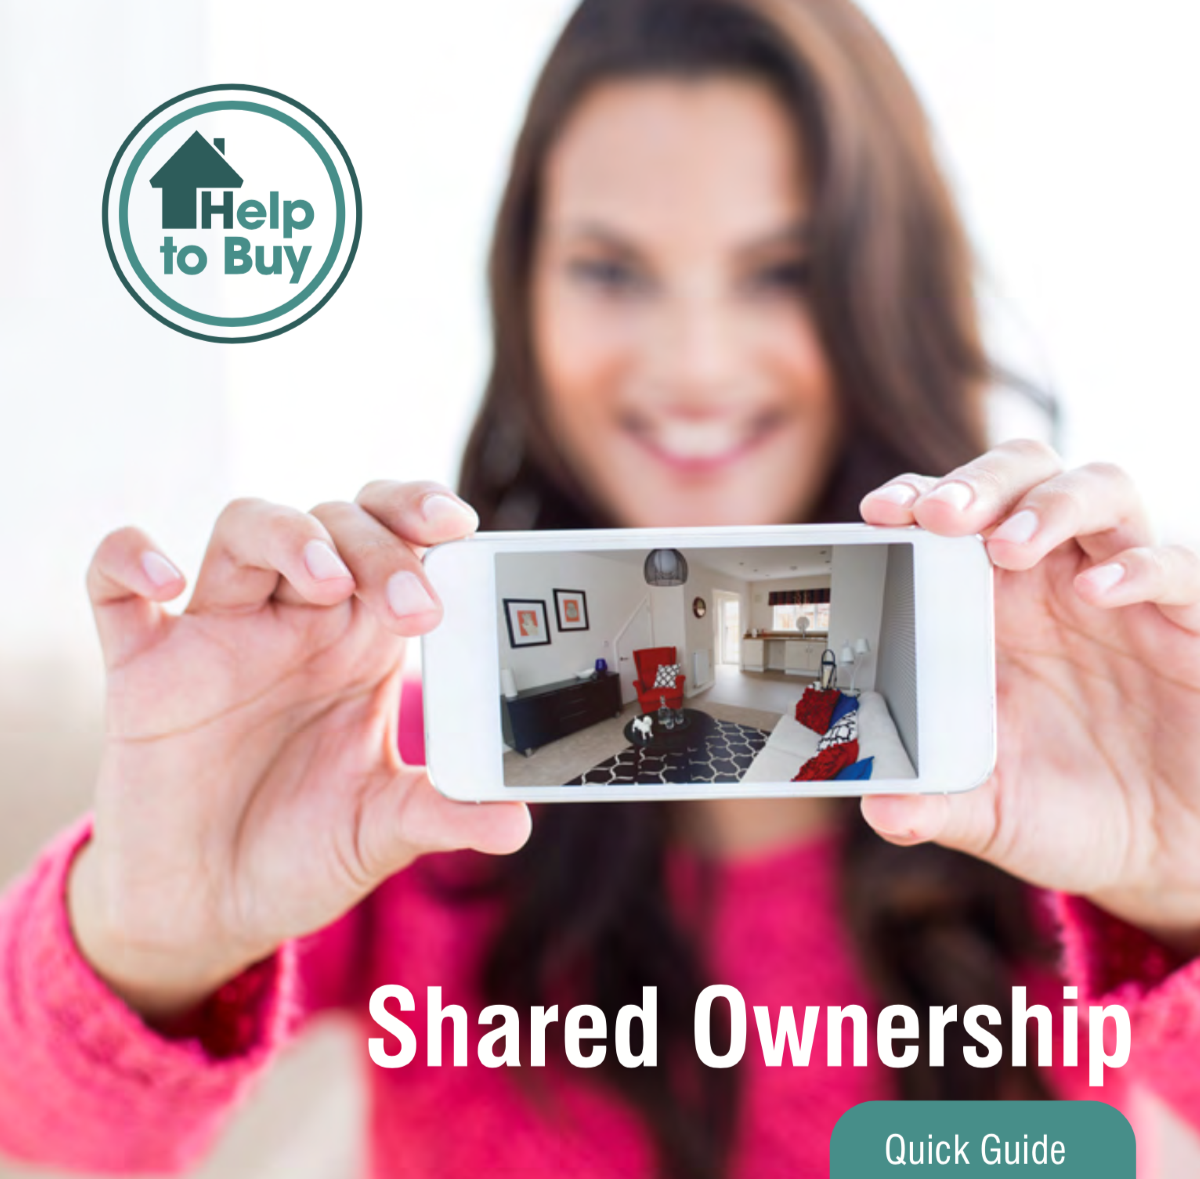 Shared Ownership Quick Guide link